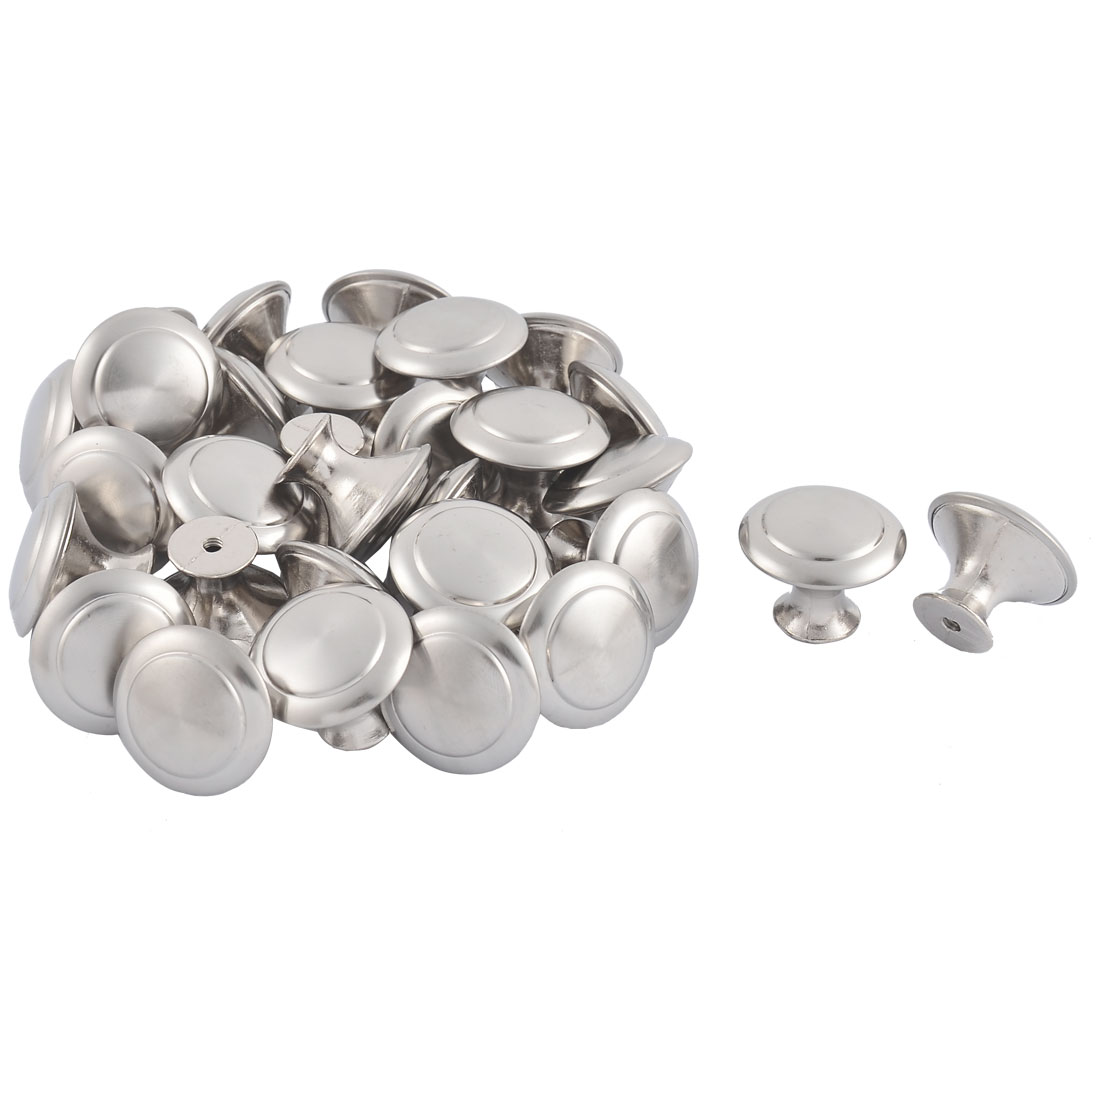 Furniture Closet Drawer Stainless Steel Pull Knob Handle Silver Tone 30 Pcs